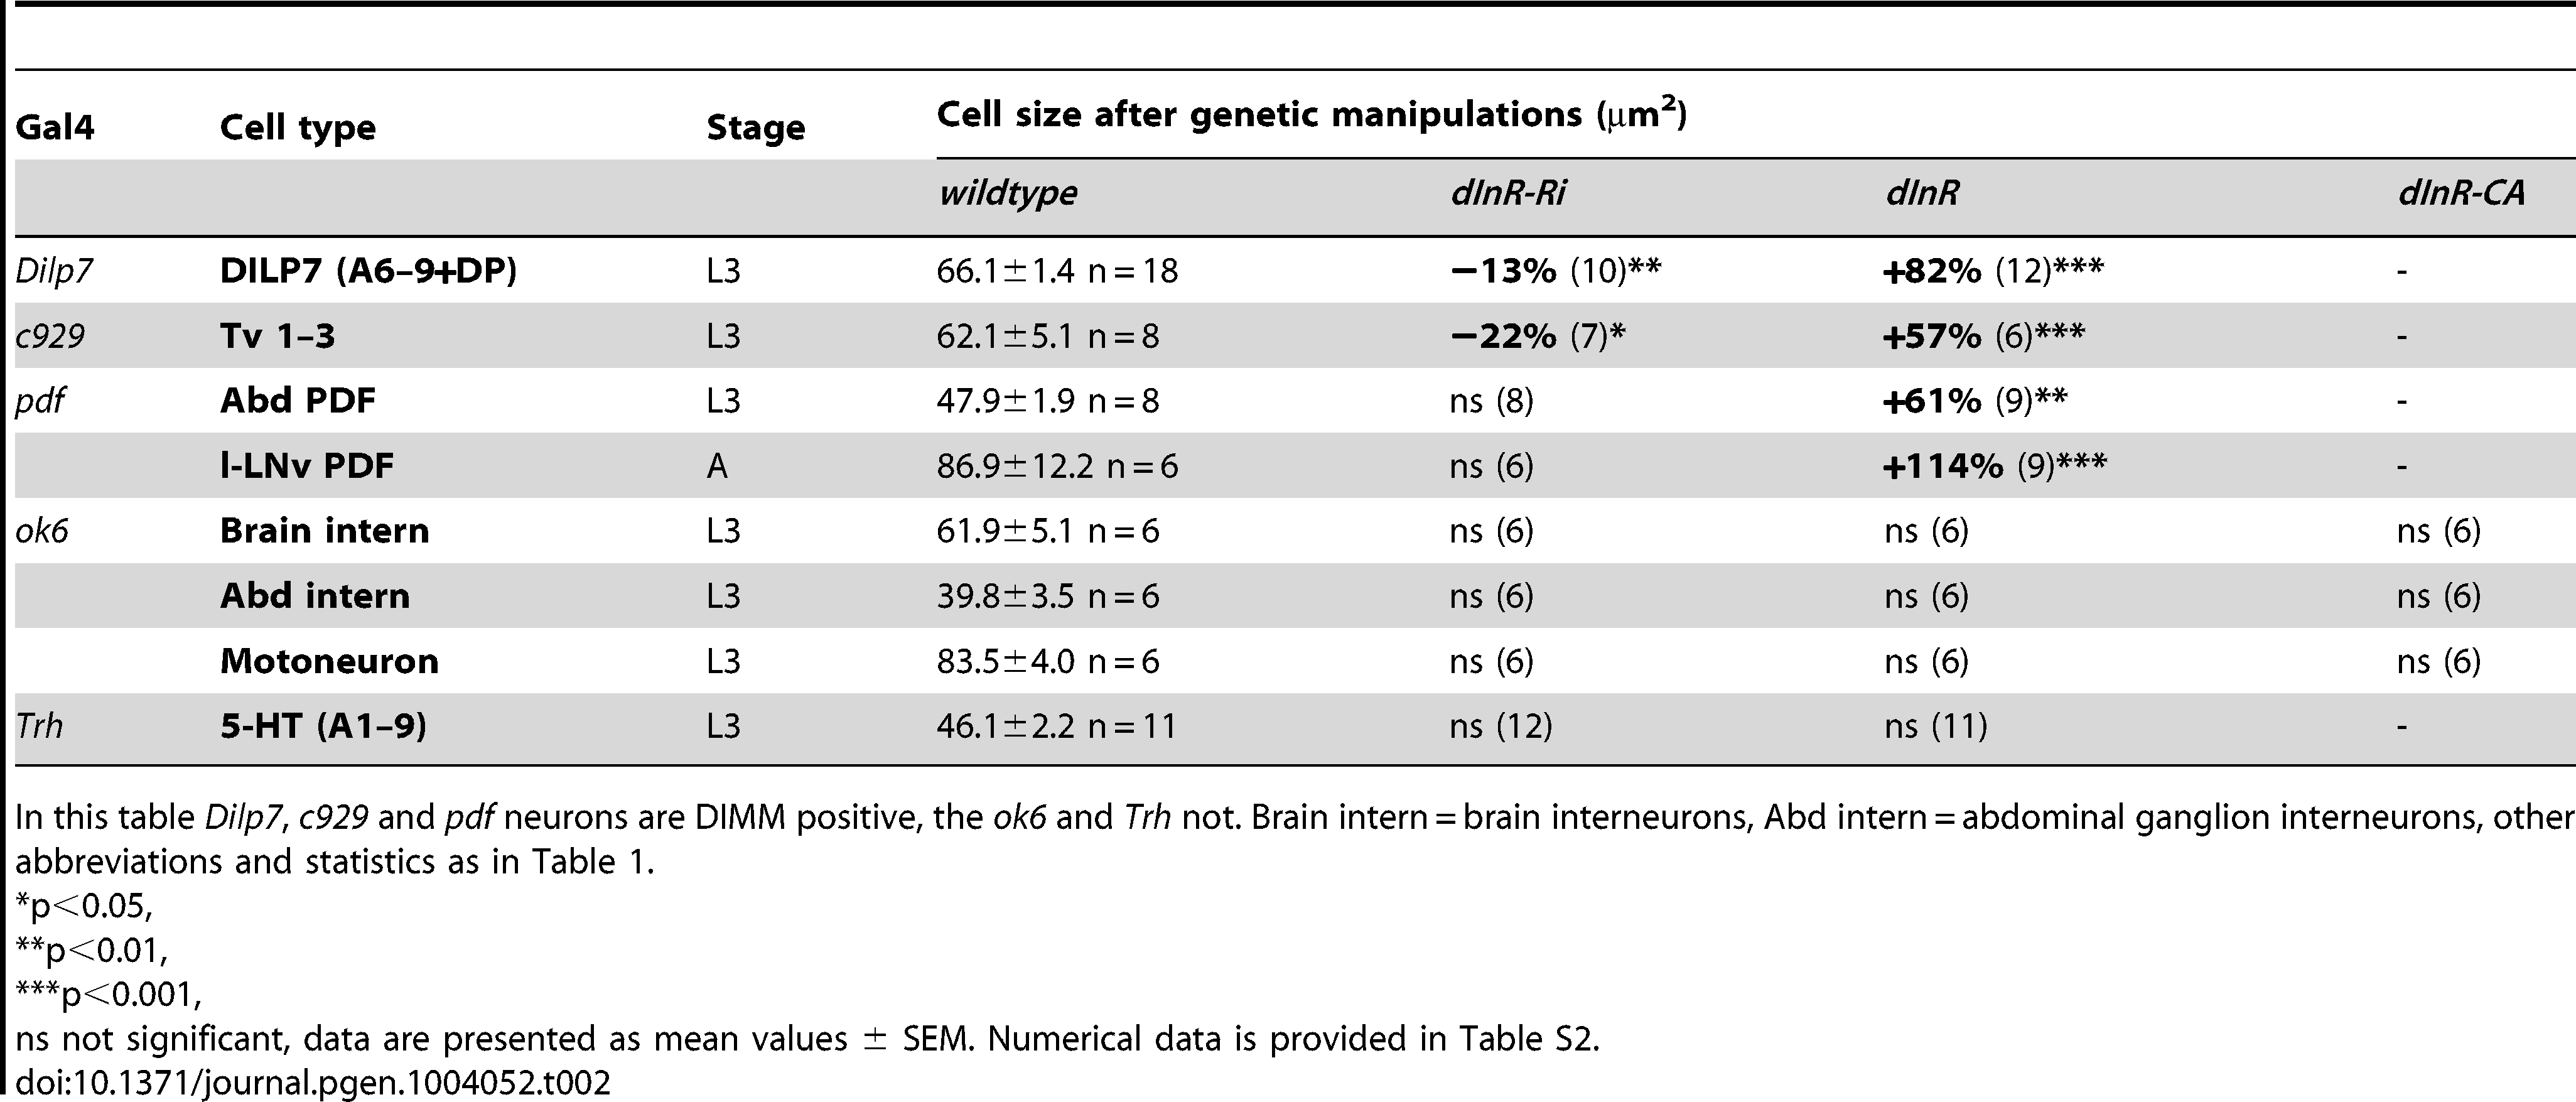 Manipulations of genes in different neuron types (peptidergic and non-peptidergic).